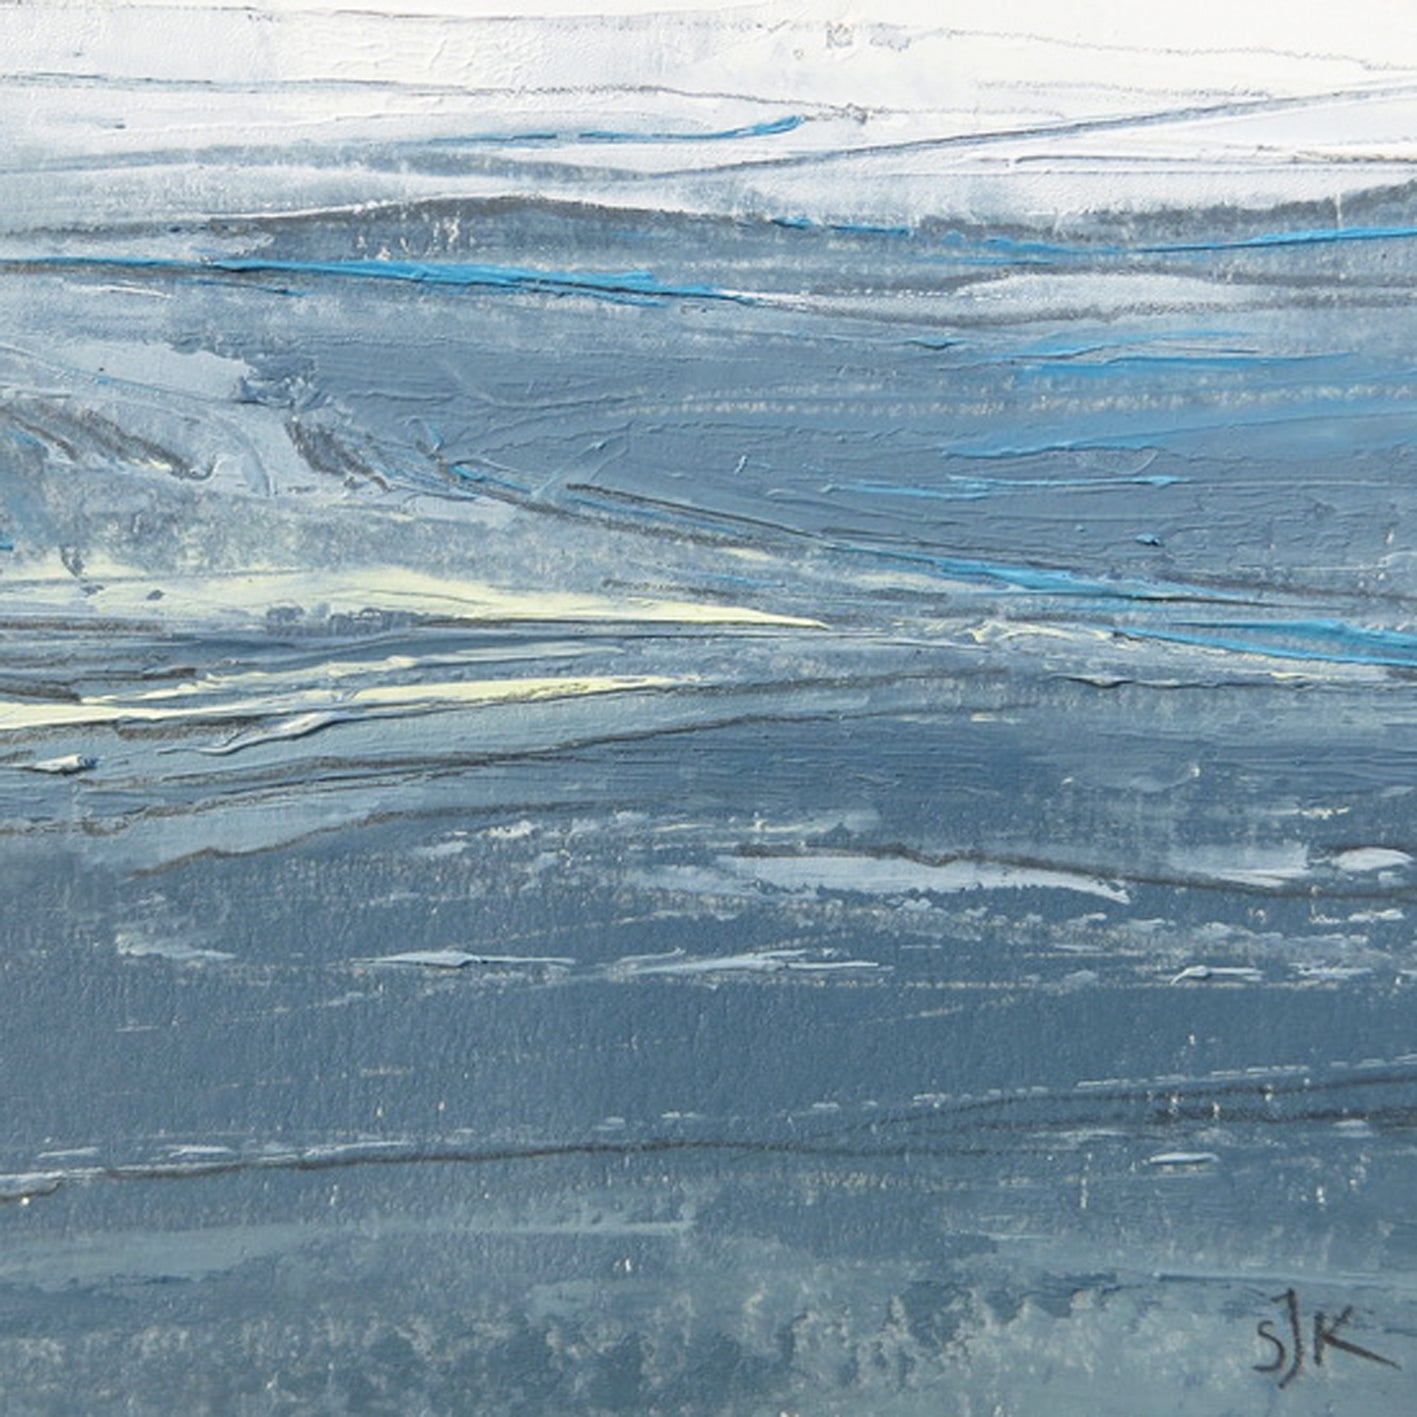 Seascape VIII by Sarah Knight original semi-abstract mini oil seascape palette knife painting in shades of grey blue and turquoise